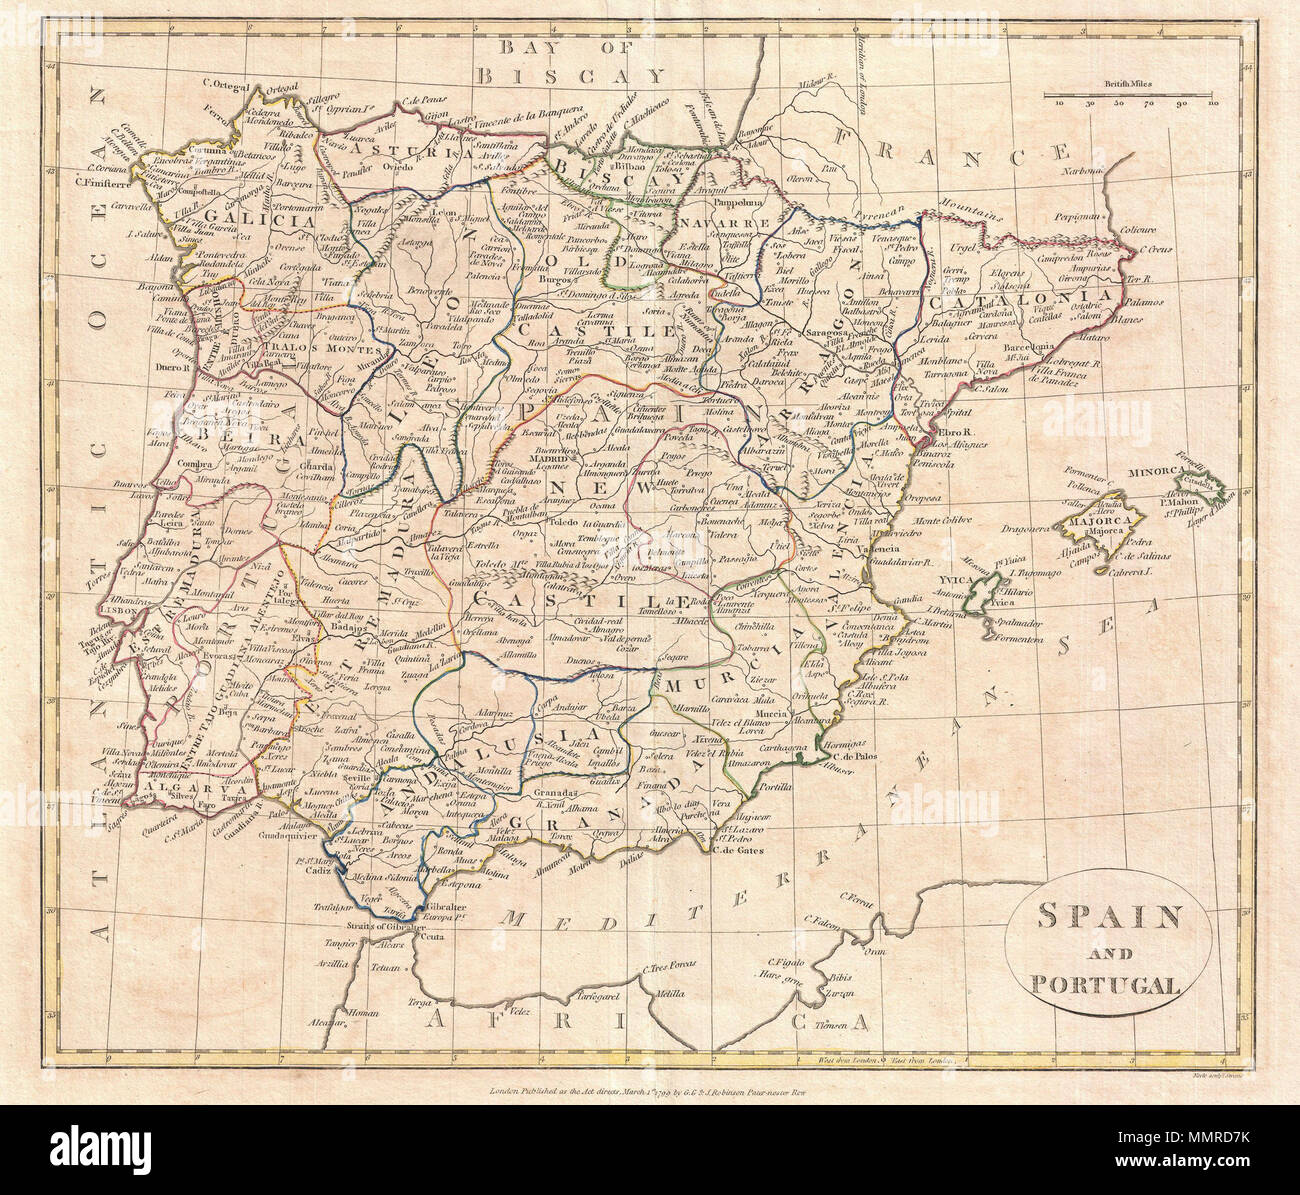 Map Of Spain Over Time.English A Fine 1799 Map Of Spain And Portugal By The English Map